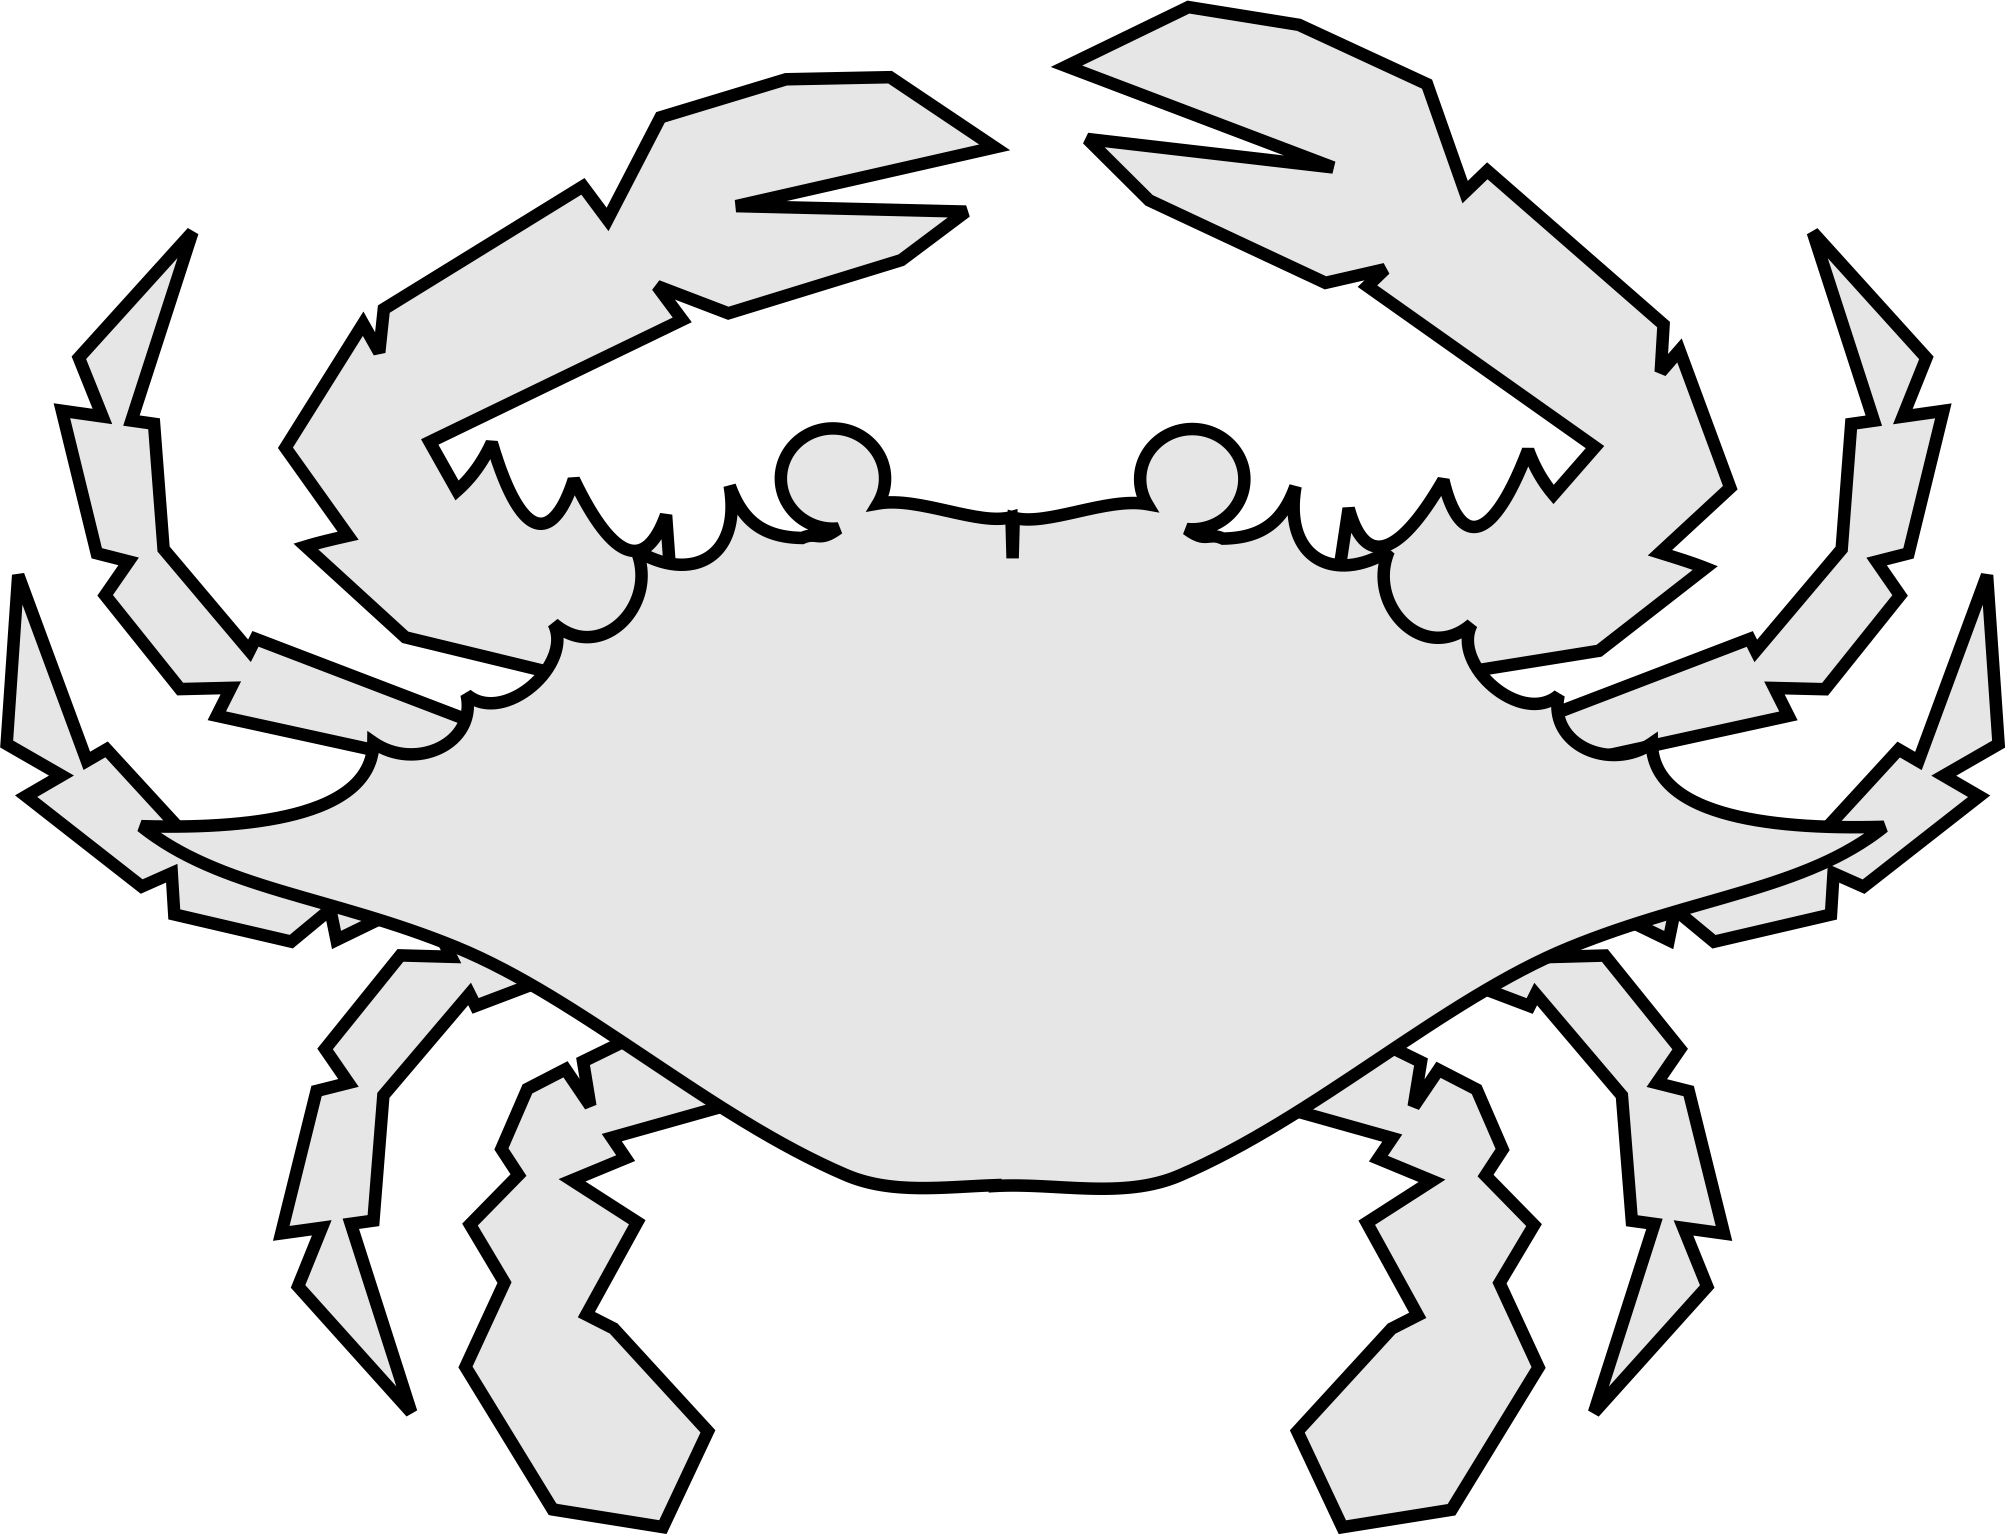 deux-part crab design